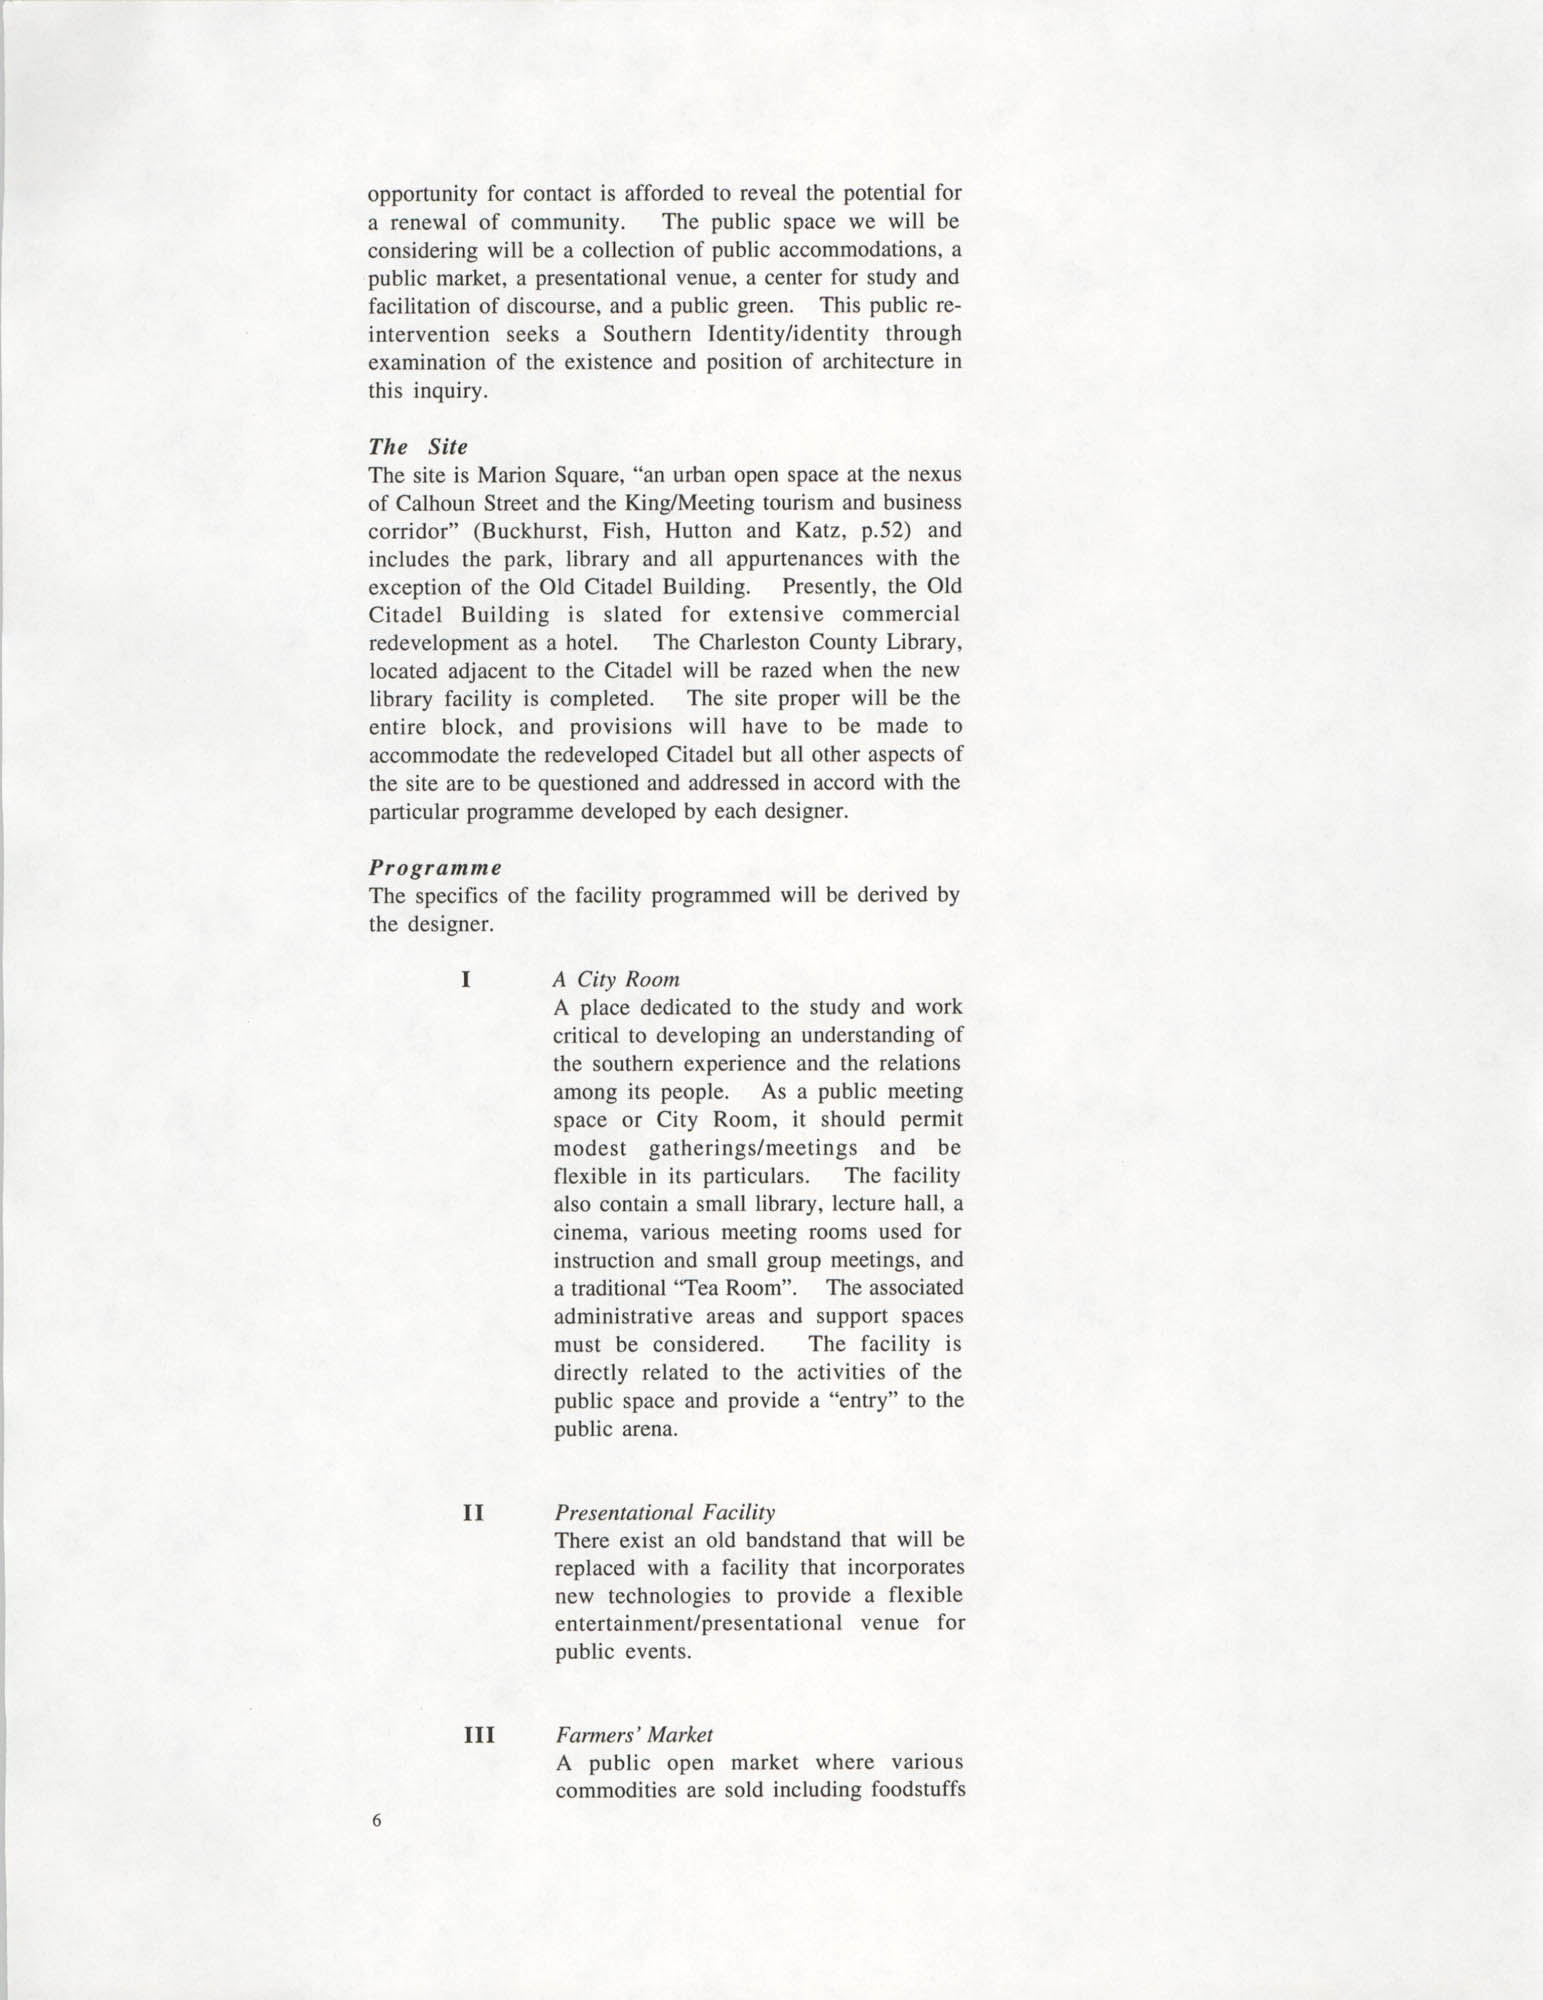 Academic Project Statement, Page 6